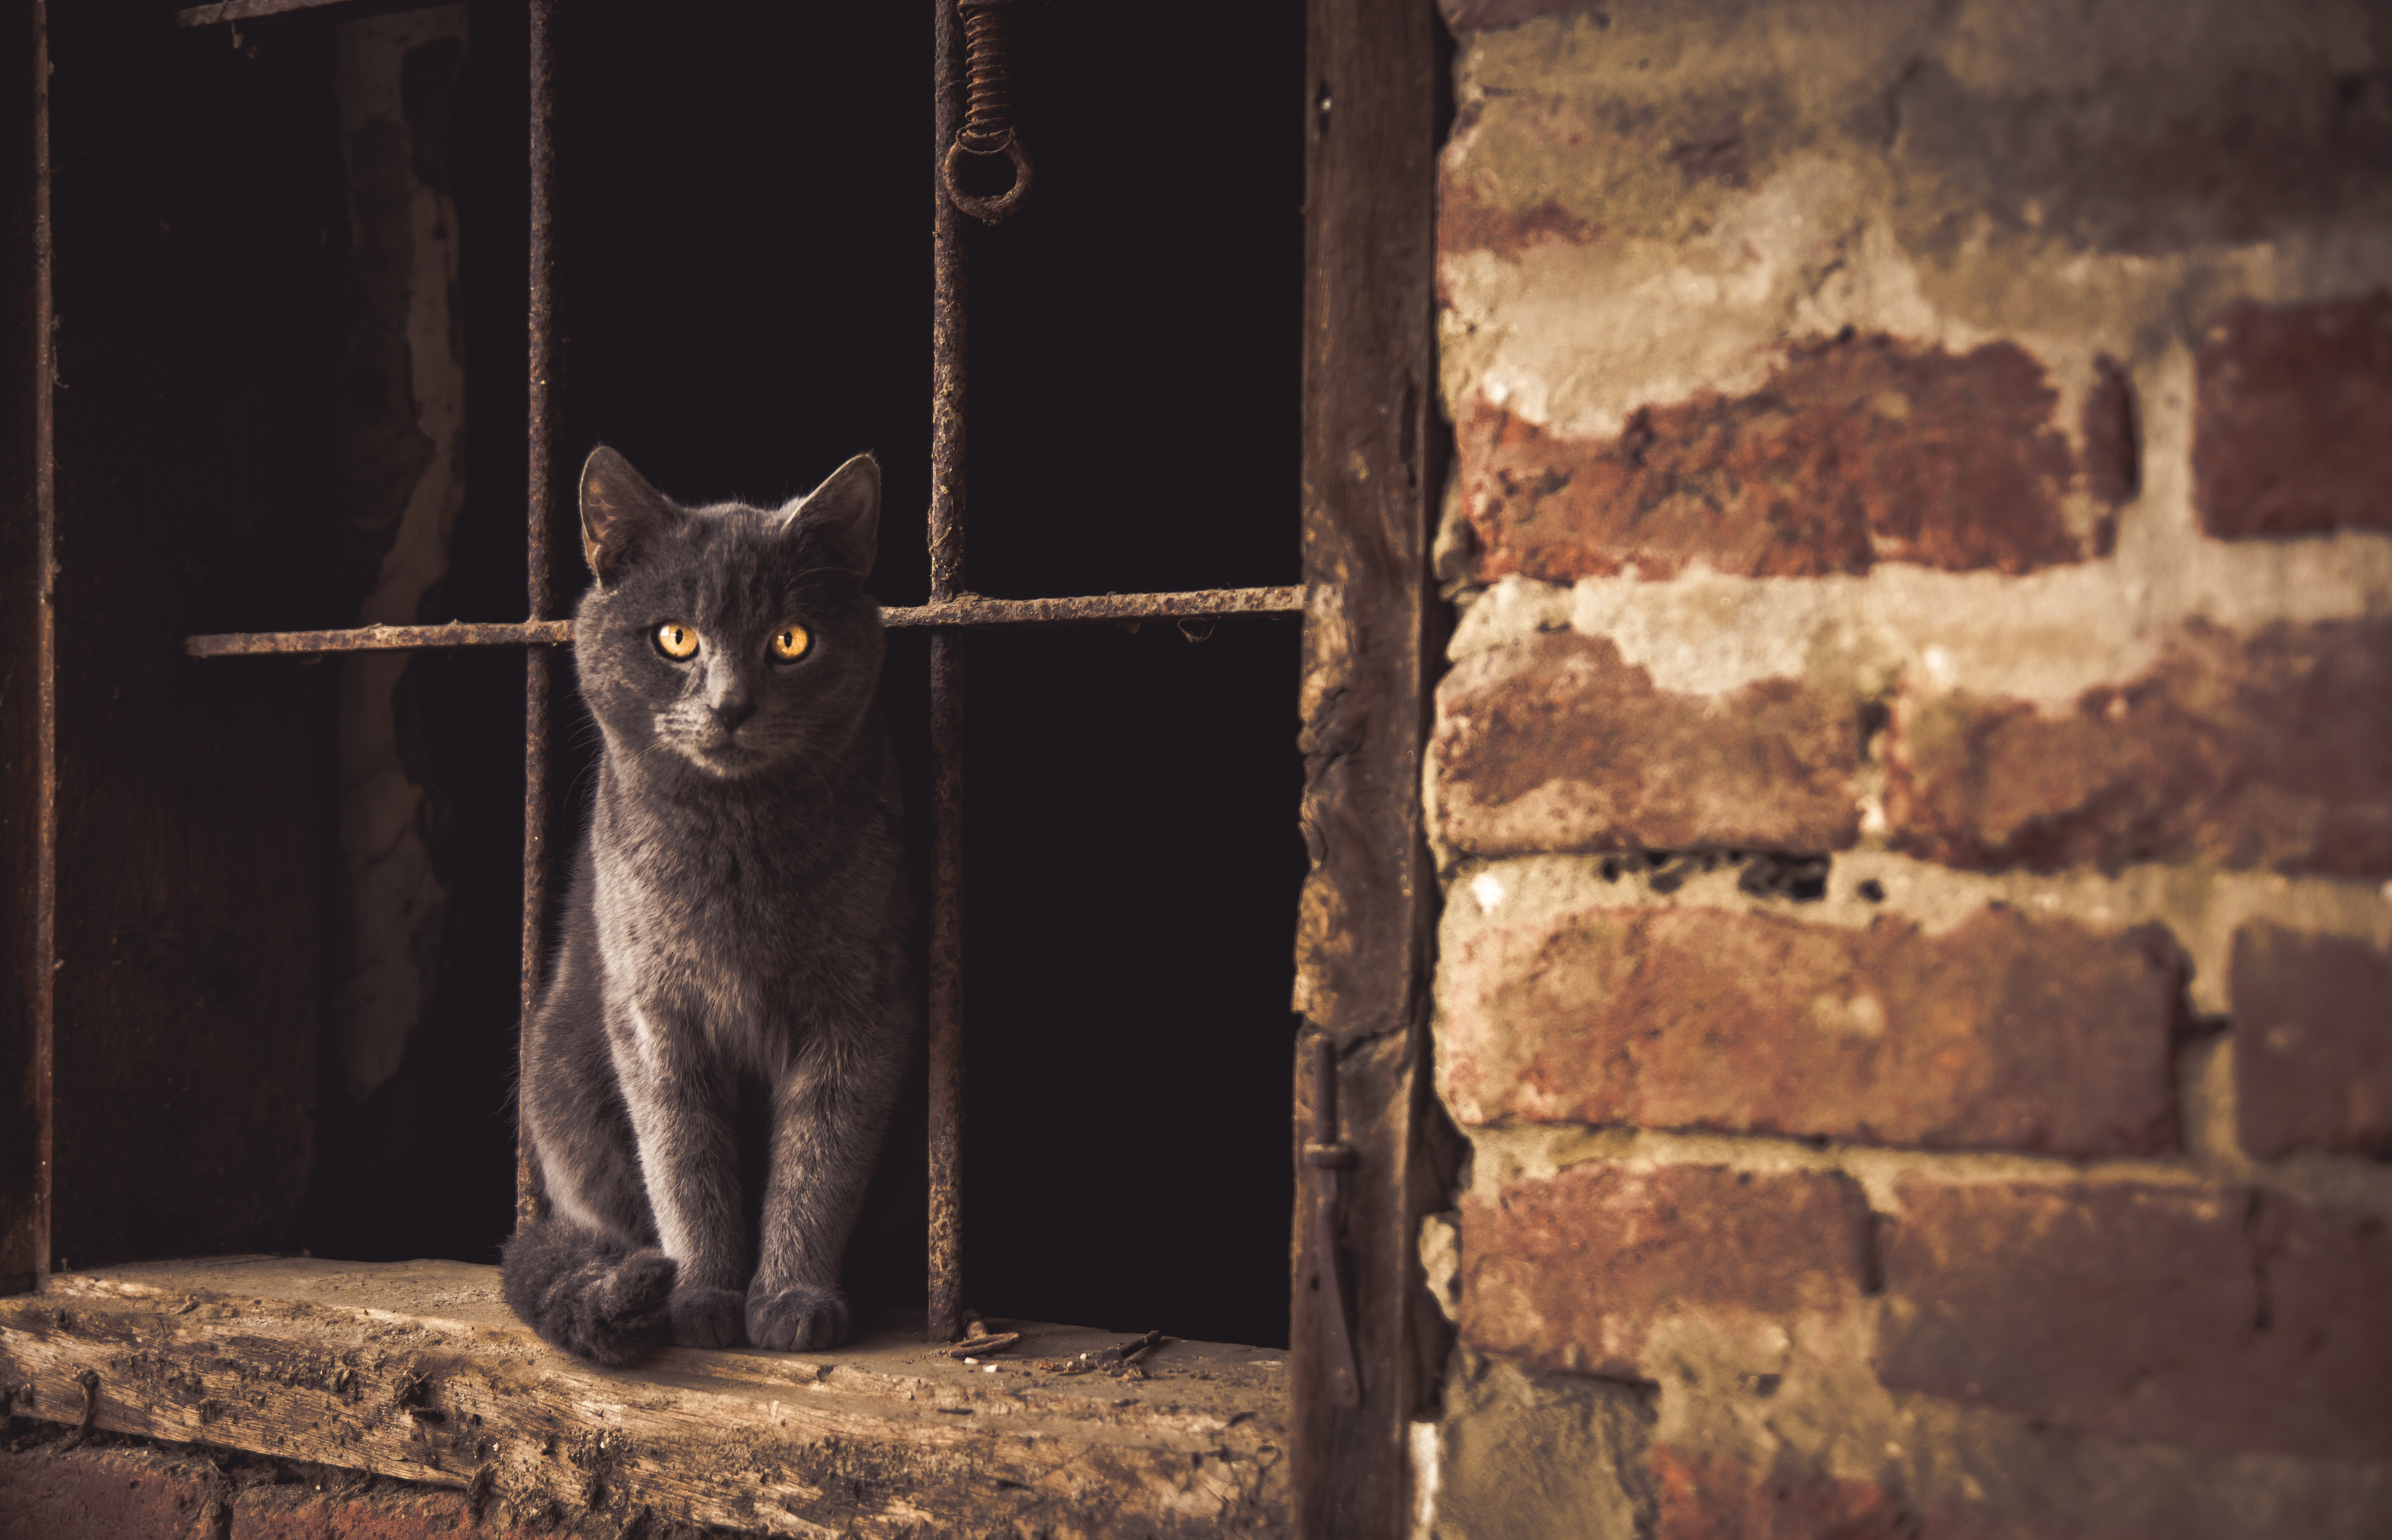 Gray cat with yellow eyes sits in window of old building with rusted bars and brick